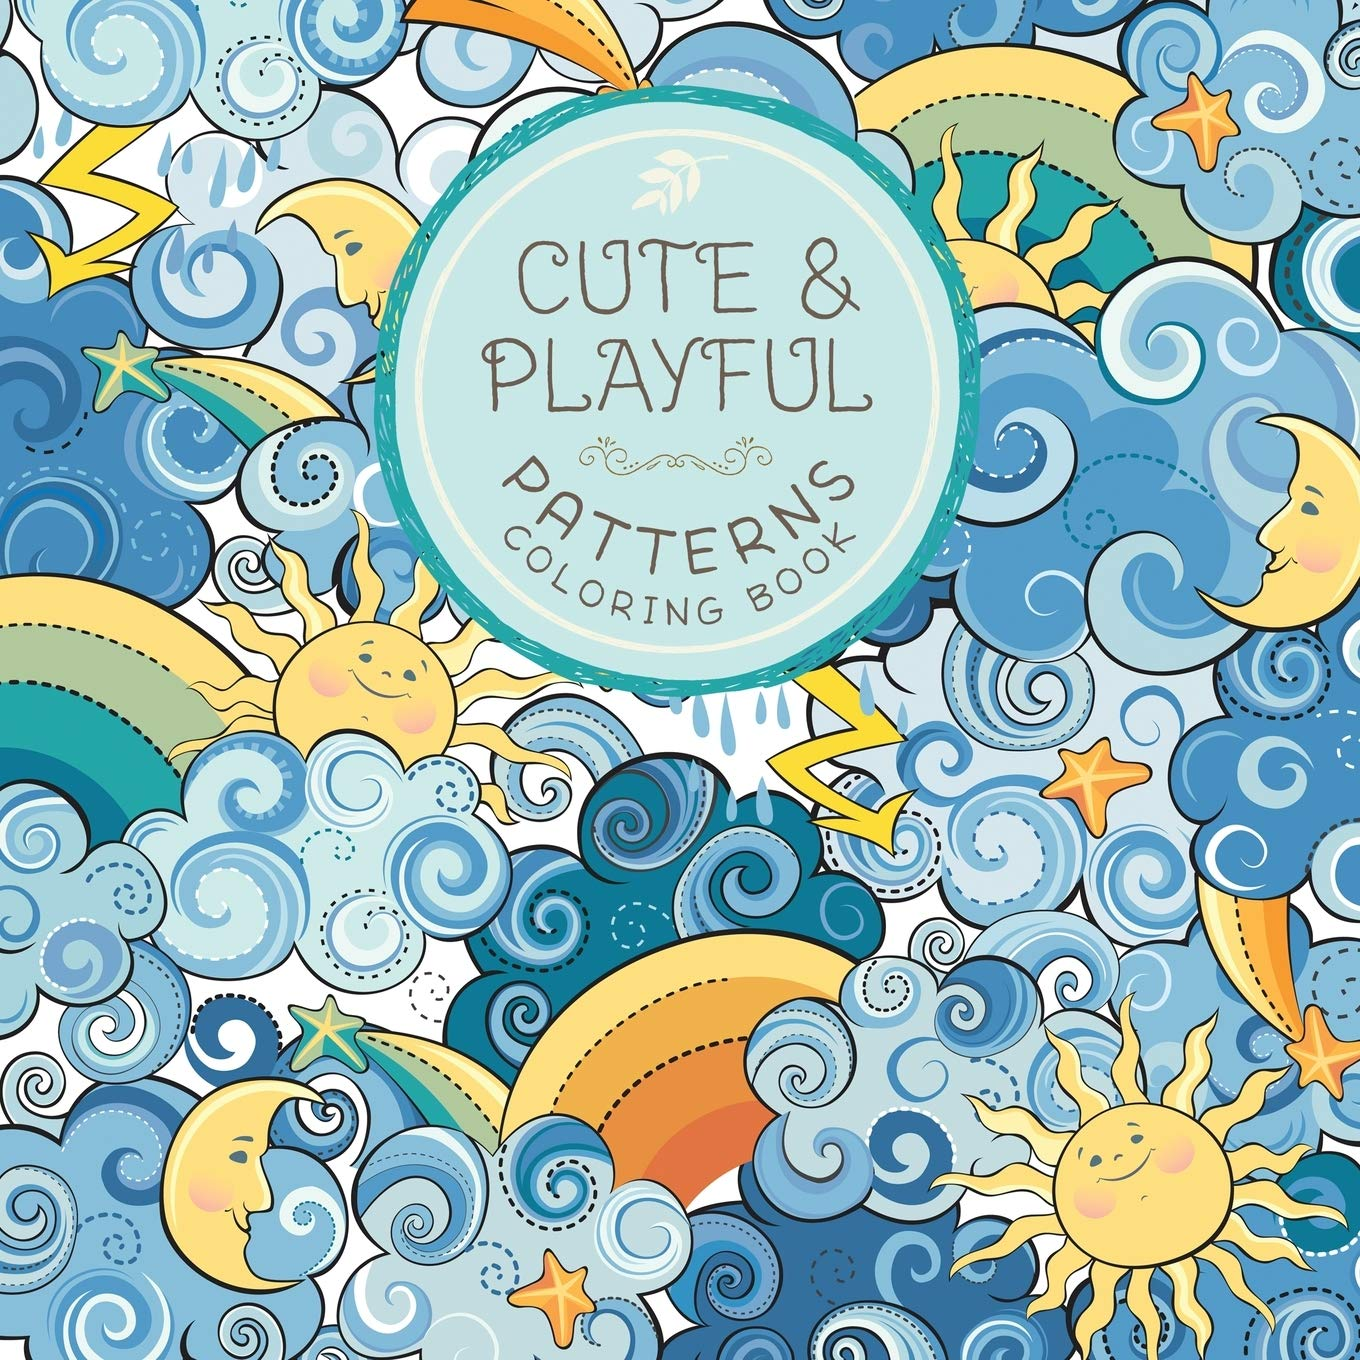 Cute Playful Patterns Coloring Book product image